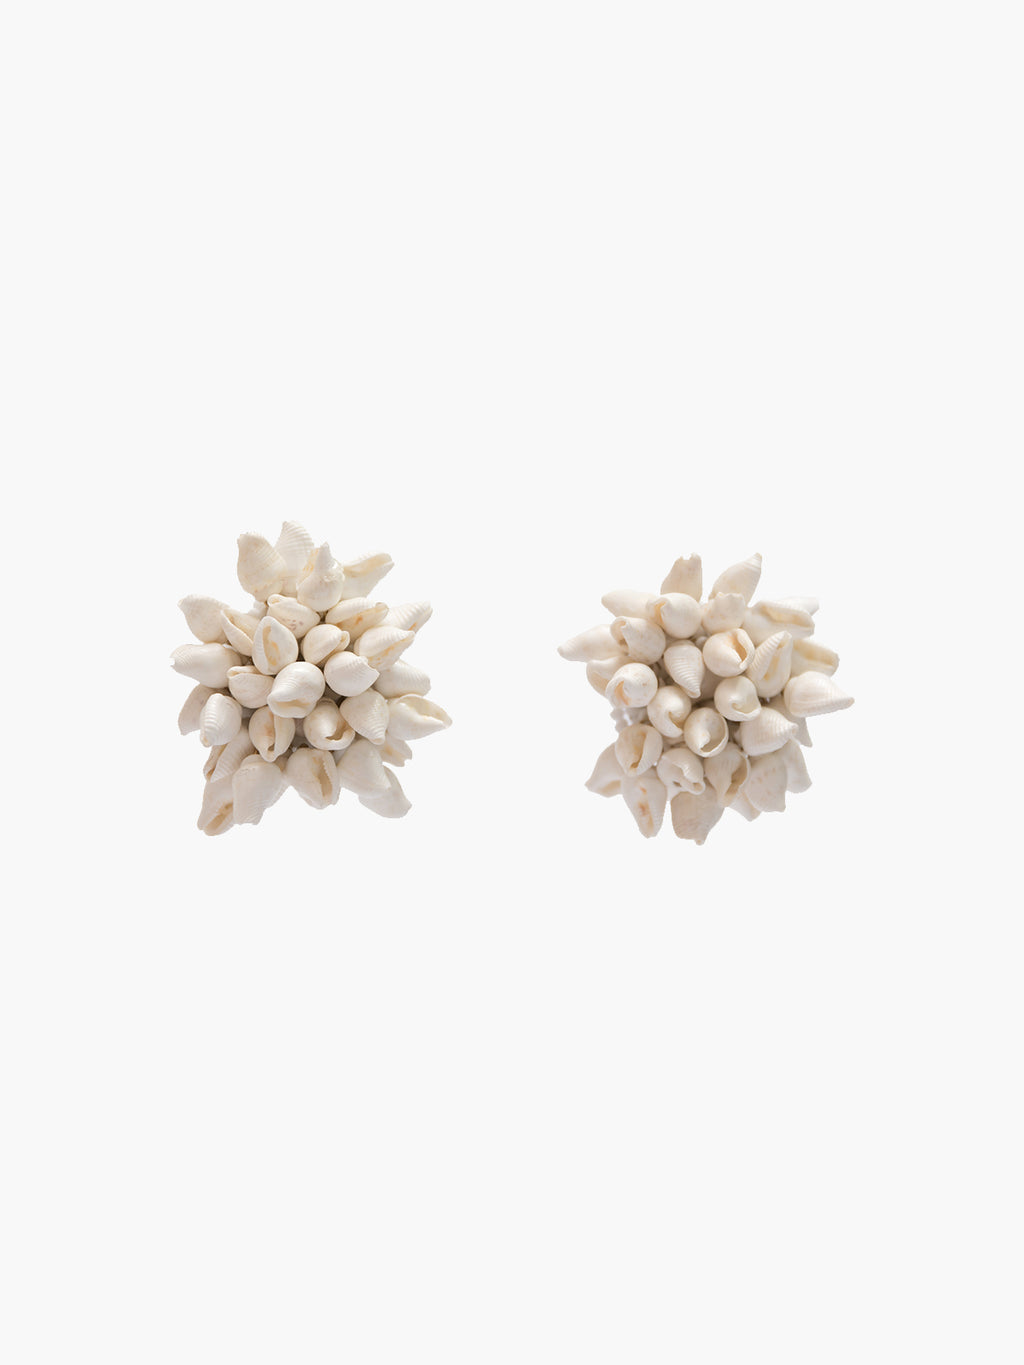 Seashell Stud Earrings | Natural